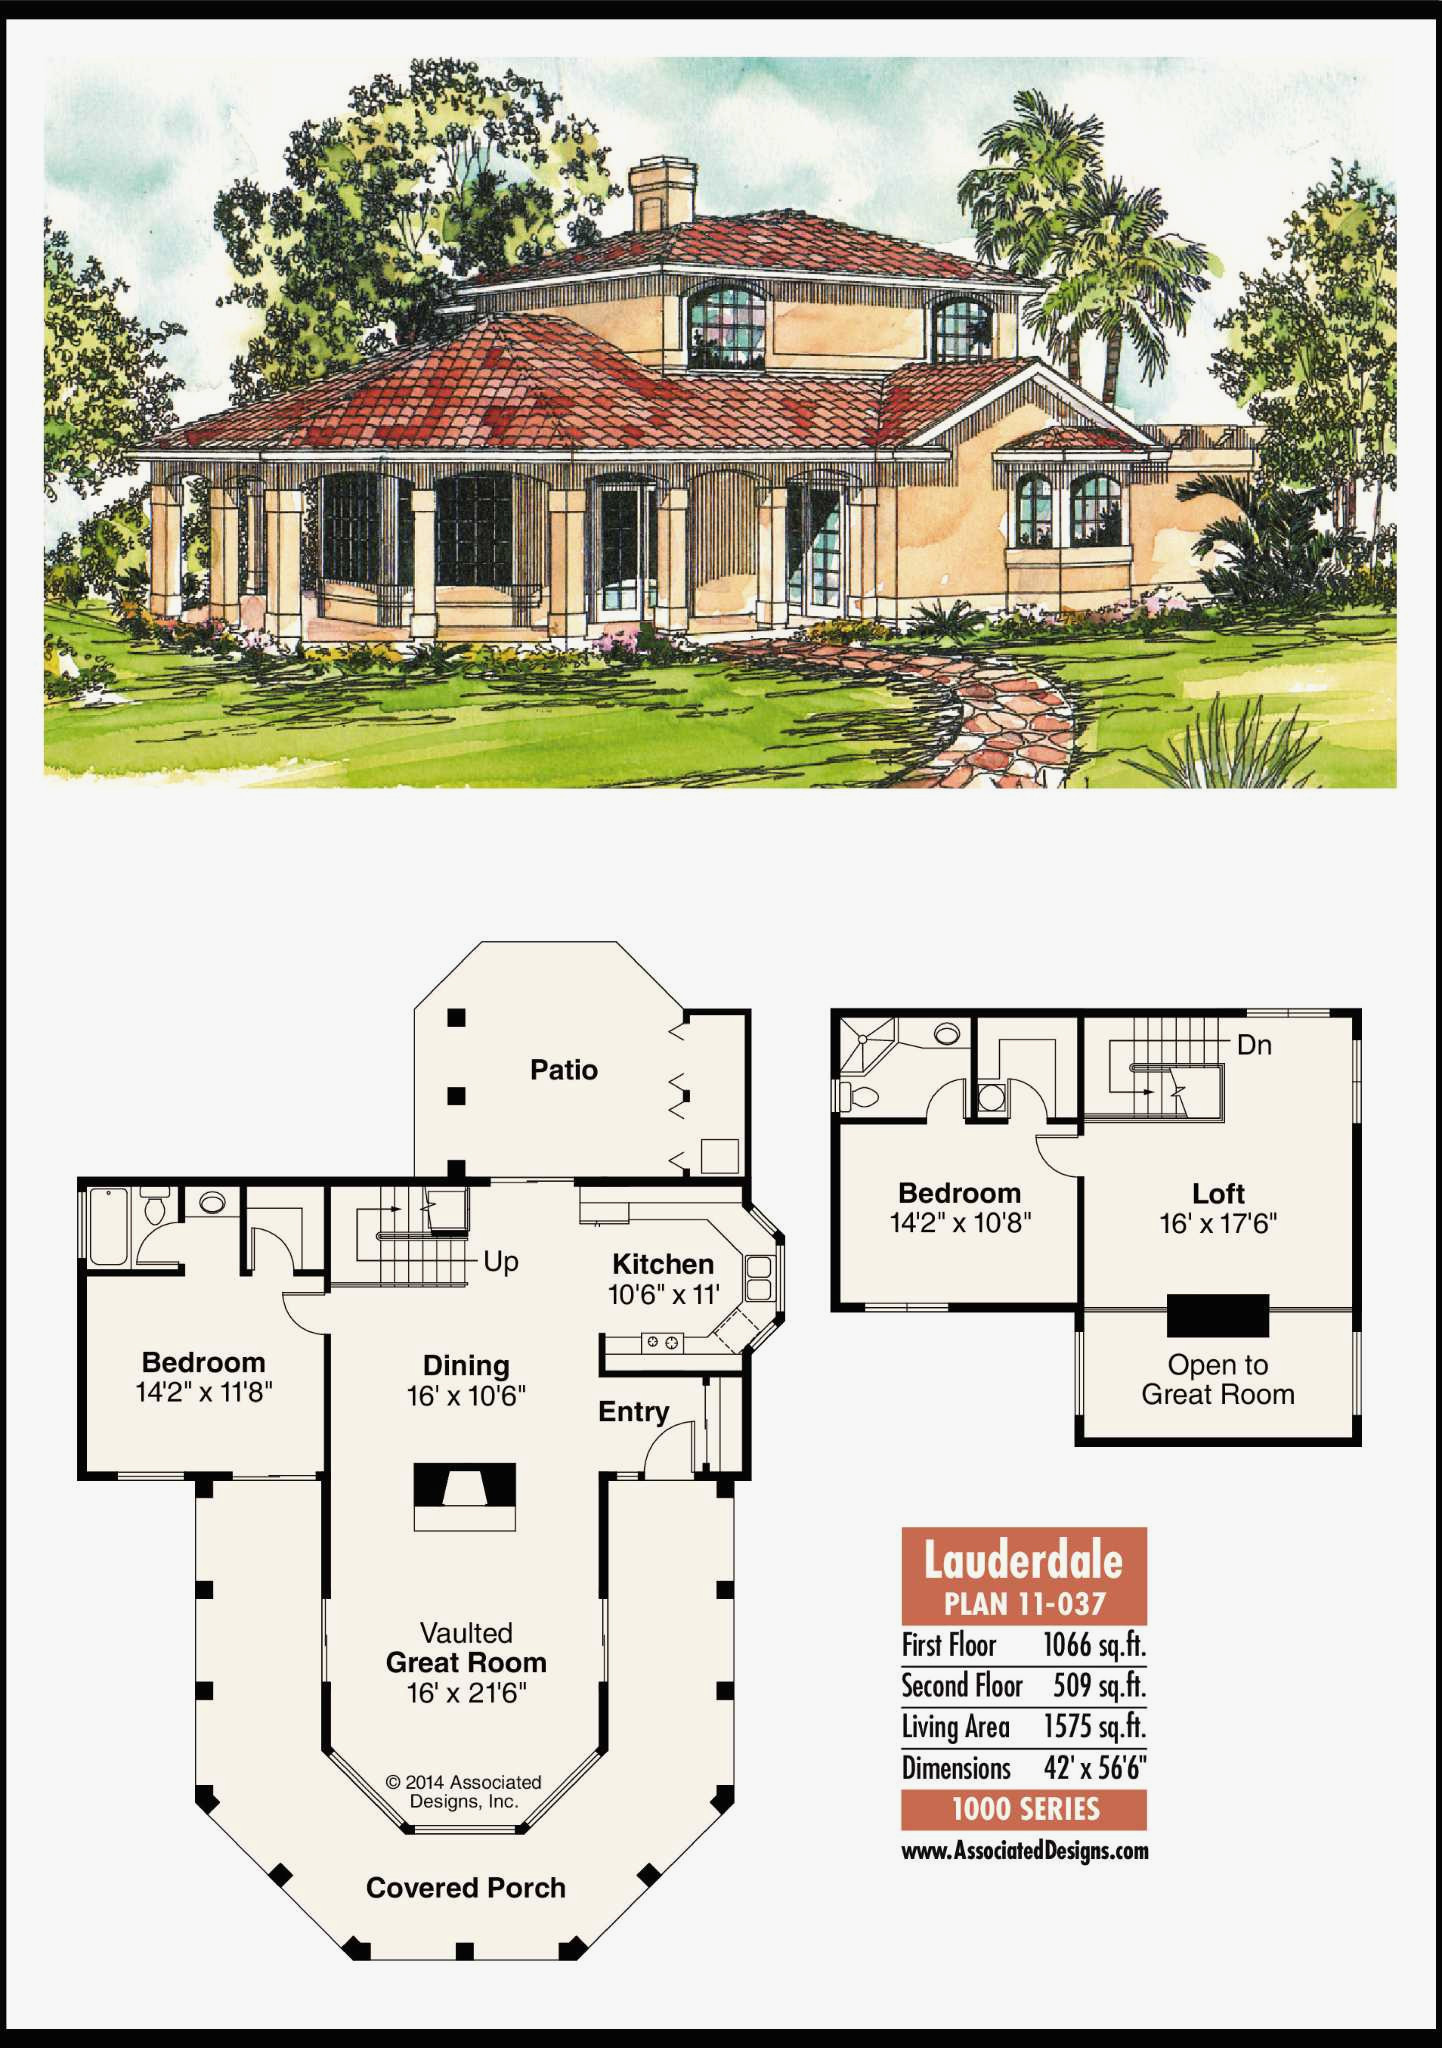 panoramic view house plans elegant house plans for a panoramic view times union of panoramic view house plans